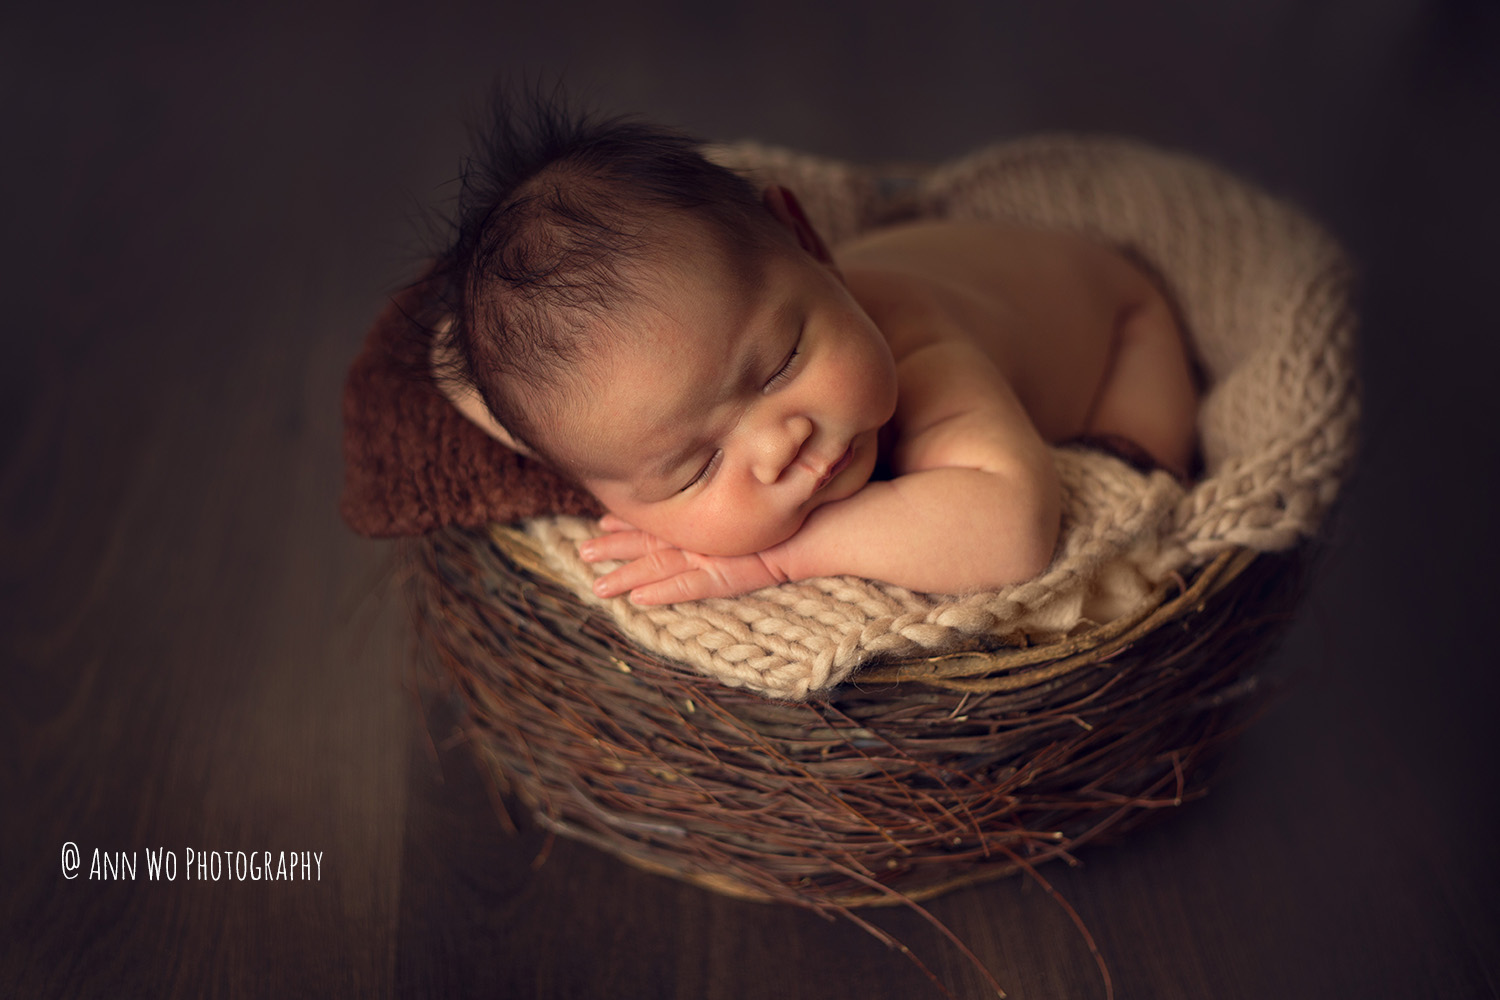 ann-wo-photo-newborn-preview-london-baby-photographer.jpg